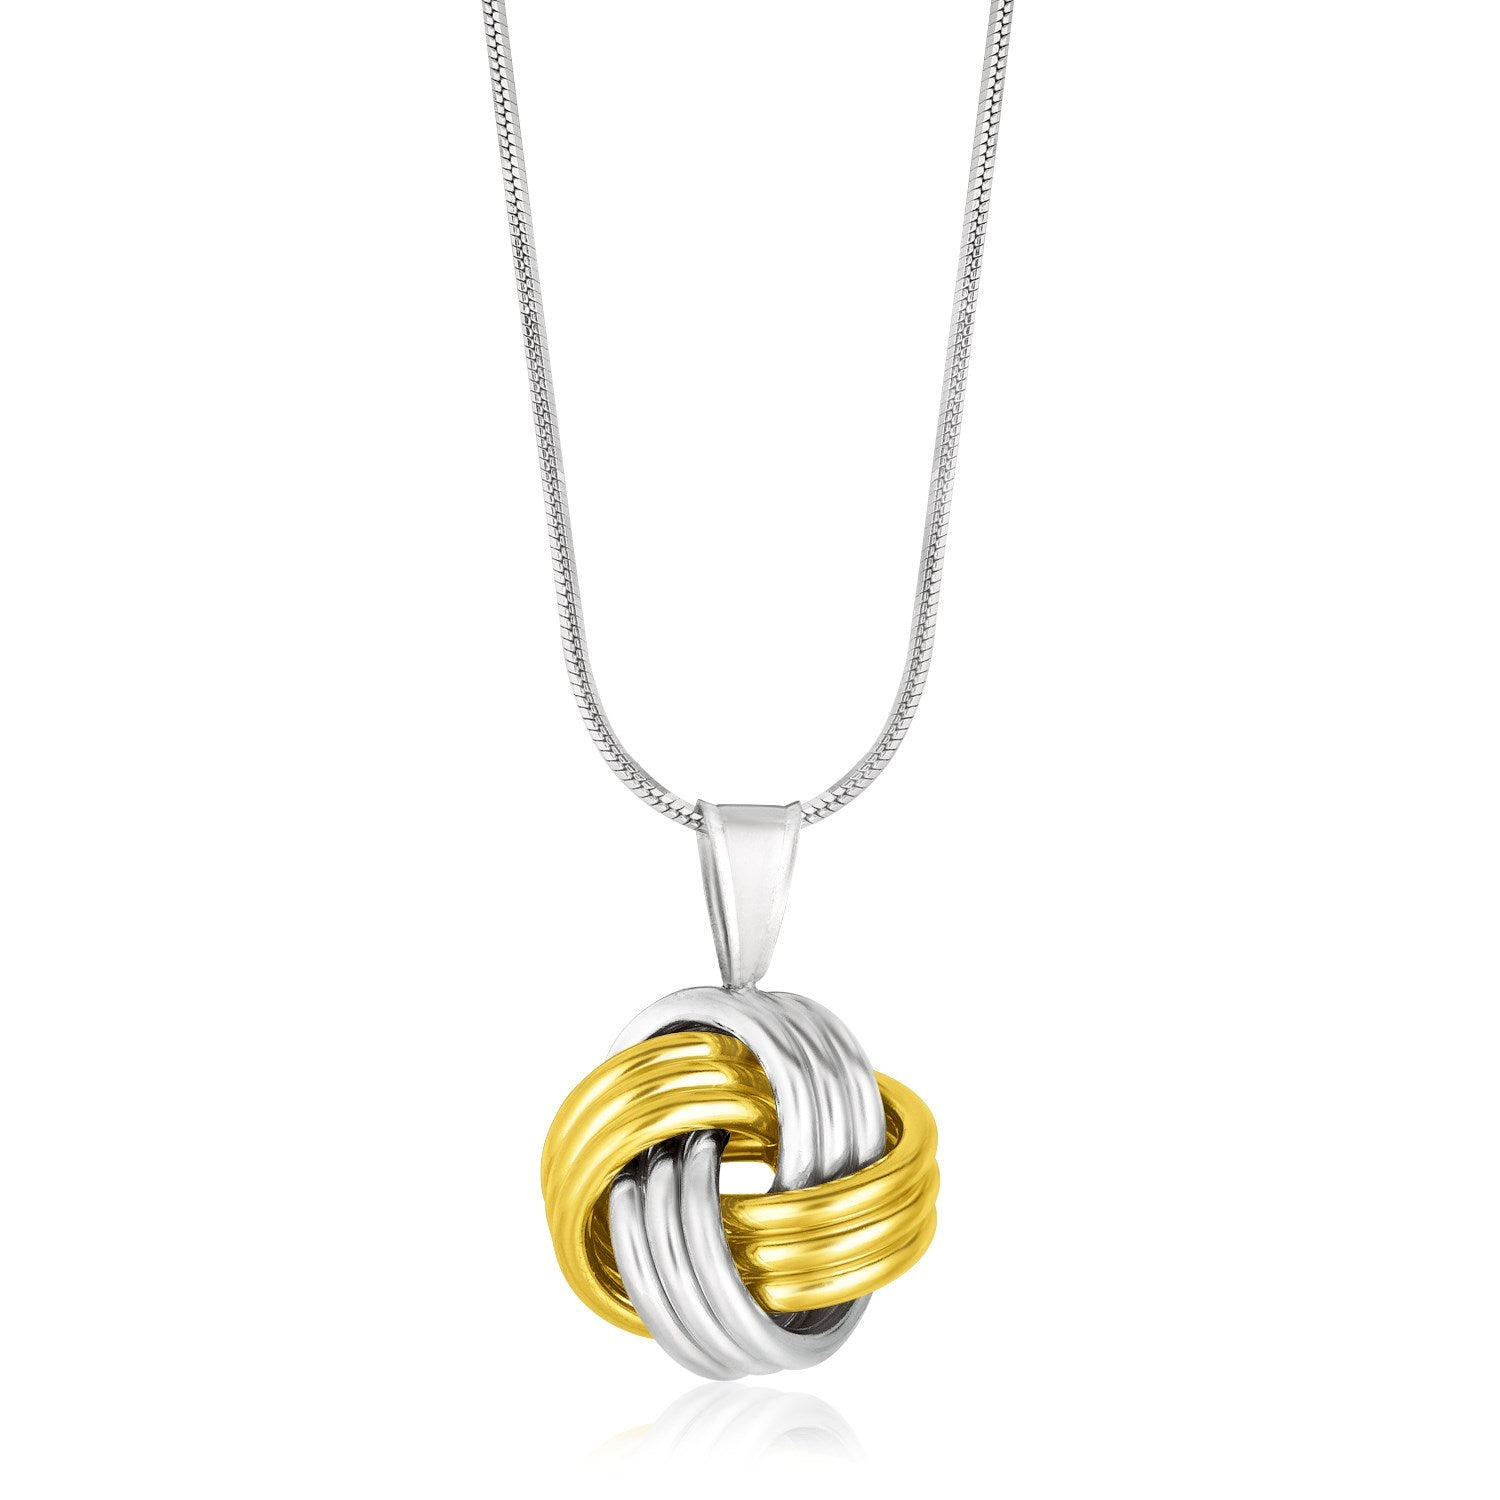 Distinctive Luxury London Style 14K Yellow Gold & Sterling Silver Pendant in a Ridge Texture Love Knot Style